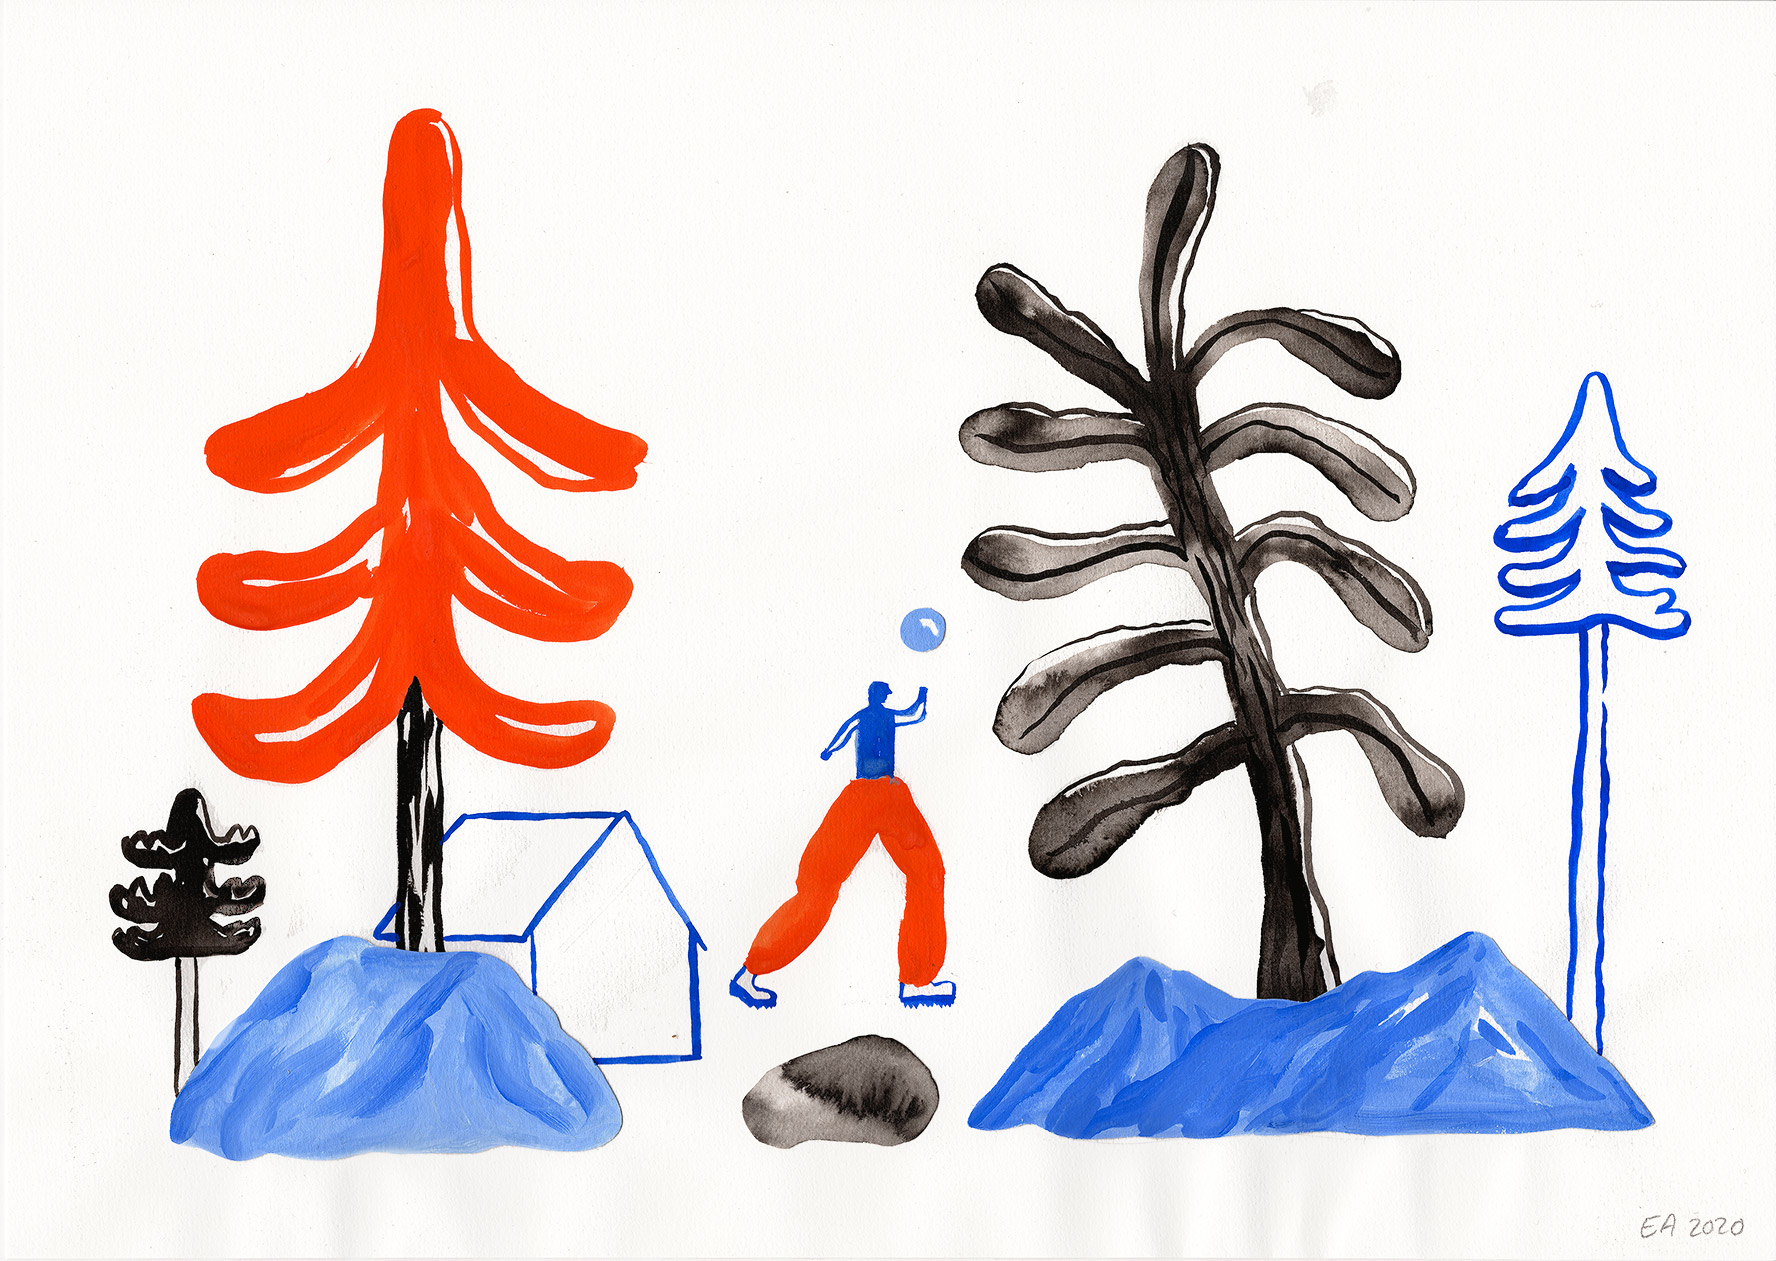 drawings, watercolor-paintings, collages, aesthetic, colorful, family-friendly, graphical, illustrative, minimalistic, botany, cartoons, nature, people, black, blue, red, acrylic, paper, watercolor, beautiful, danish, decorative, design, forest, interior, interior-design, modern, modern-art, nordic, posters, pretty, scandinavien, trees, Buy original high quality art. Paintings, drawings, limited edition prints & posters by talented artists.